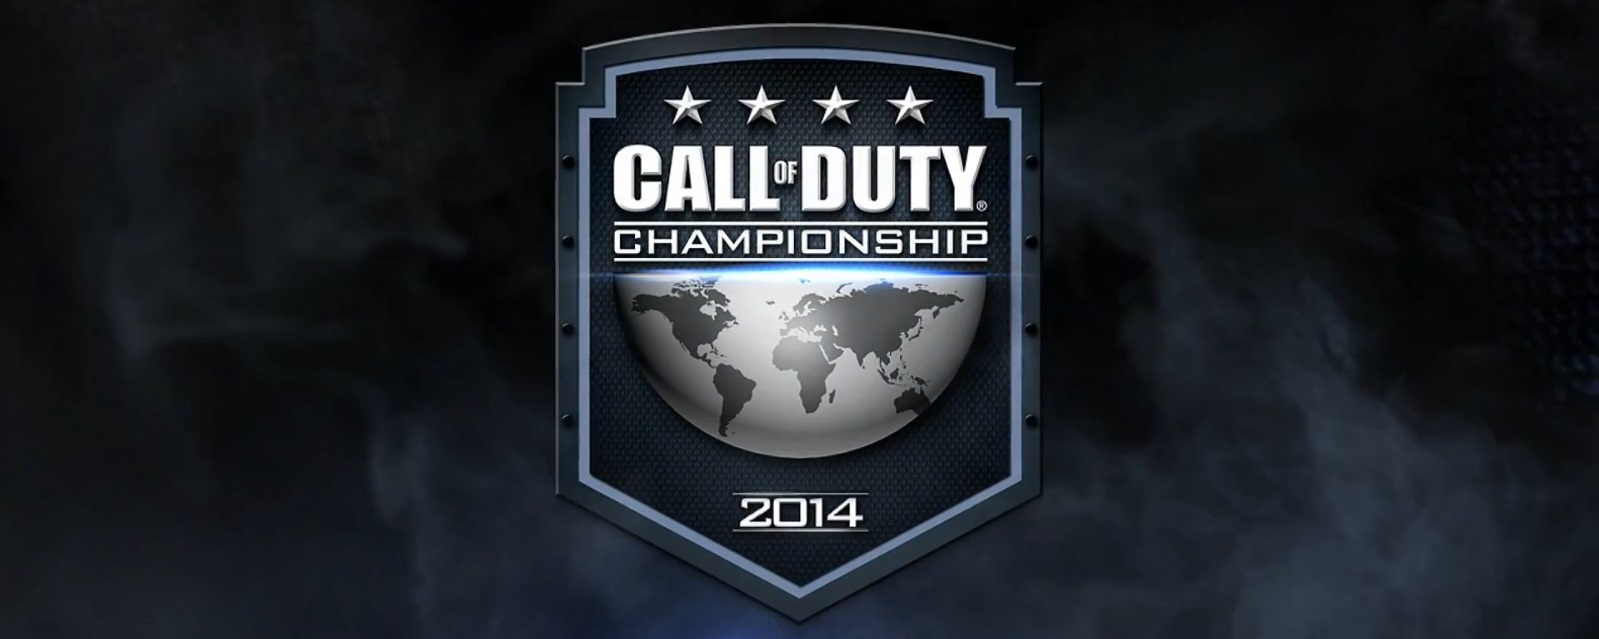 Call of Duty Championship 2014 Is one of the Greatest Gaming Tournaments